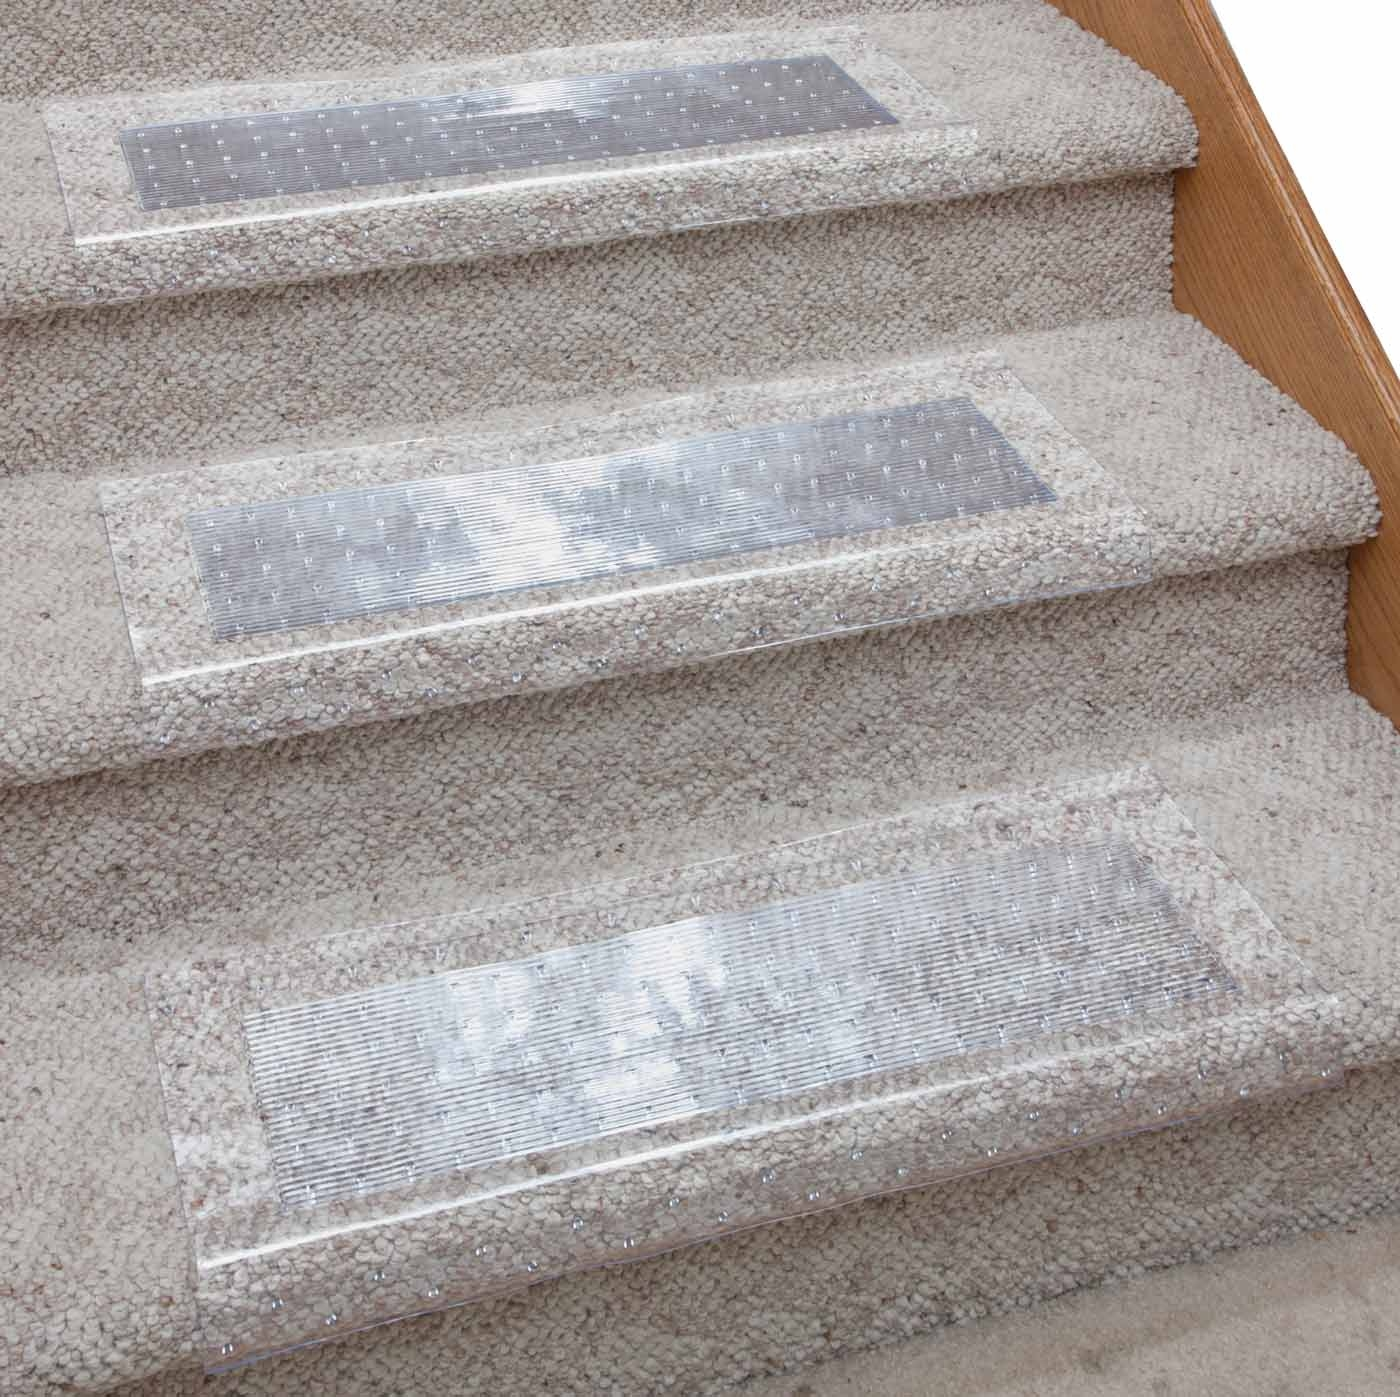 54 Stair Carpet Protectors Protector Carpets Inspirations Vinyl Within Clear Stair Tread Carpet Protectors (Photo 1 of 15)